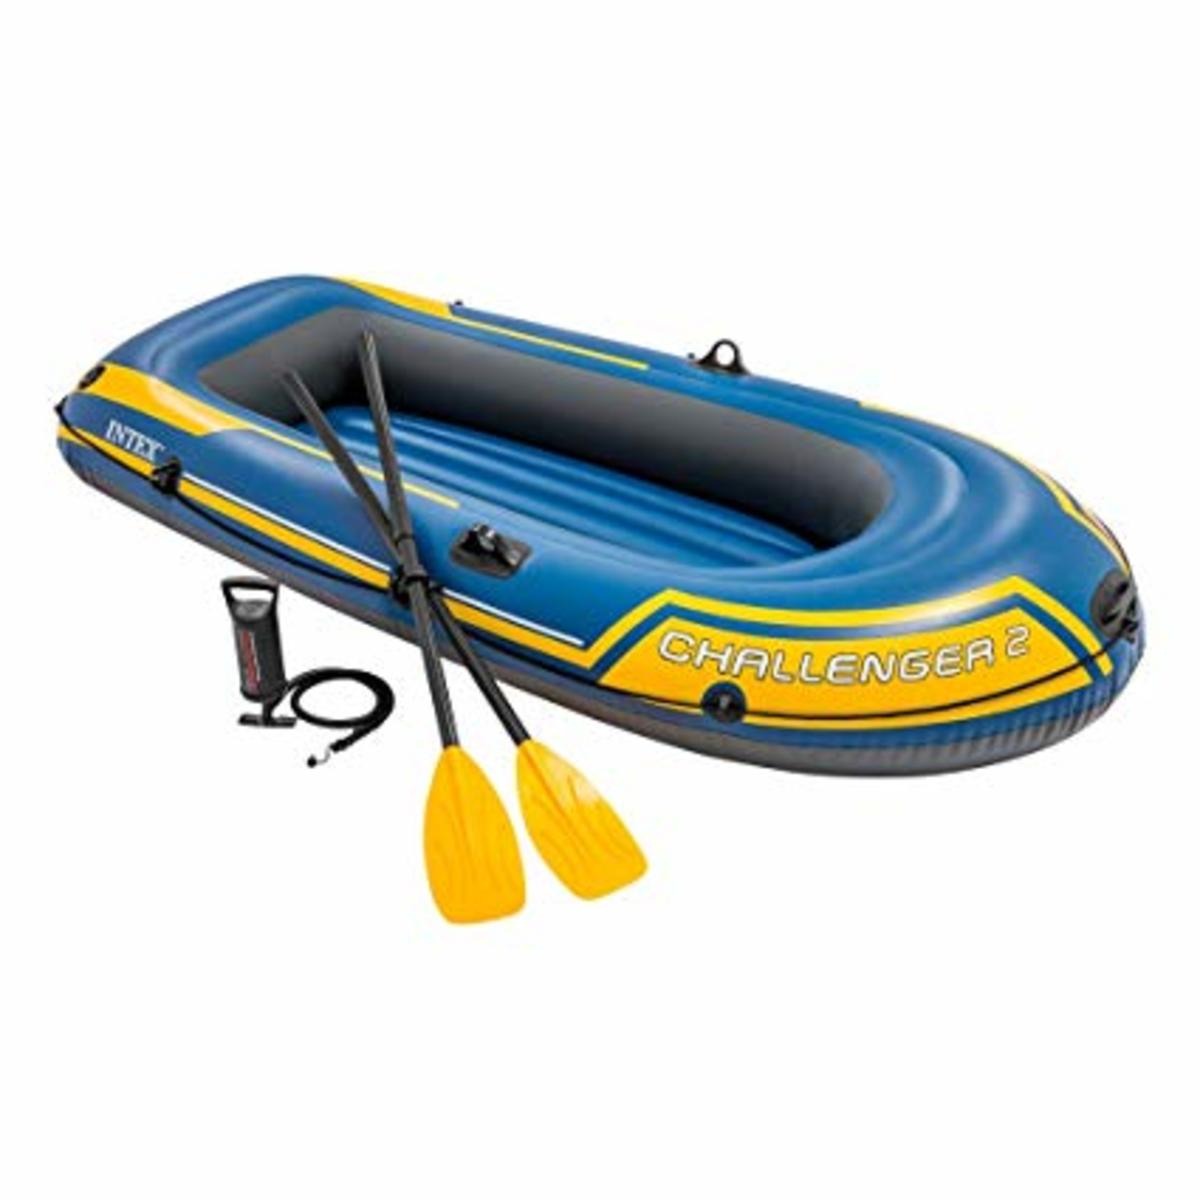 Inflatable boats will not be subject to the current round of tariffs.